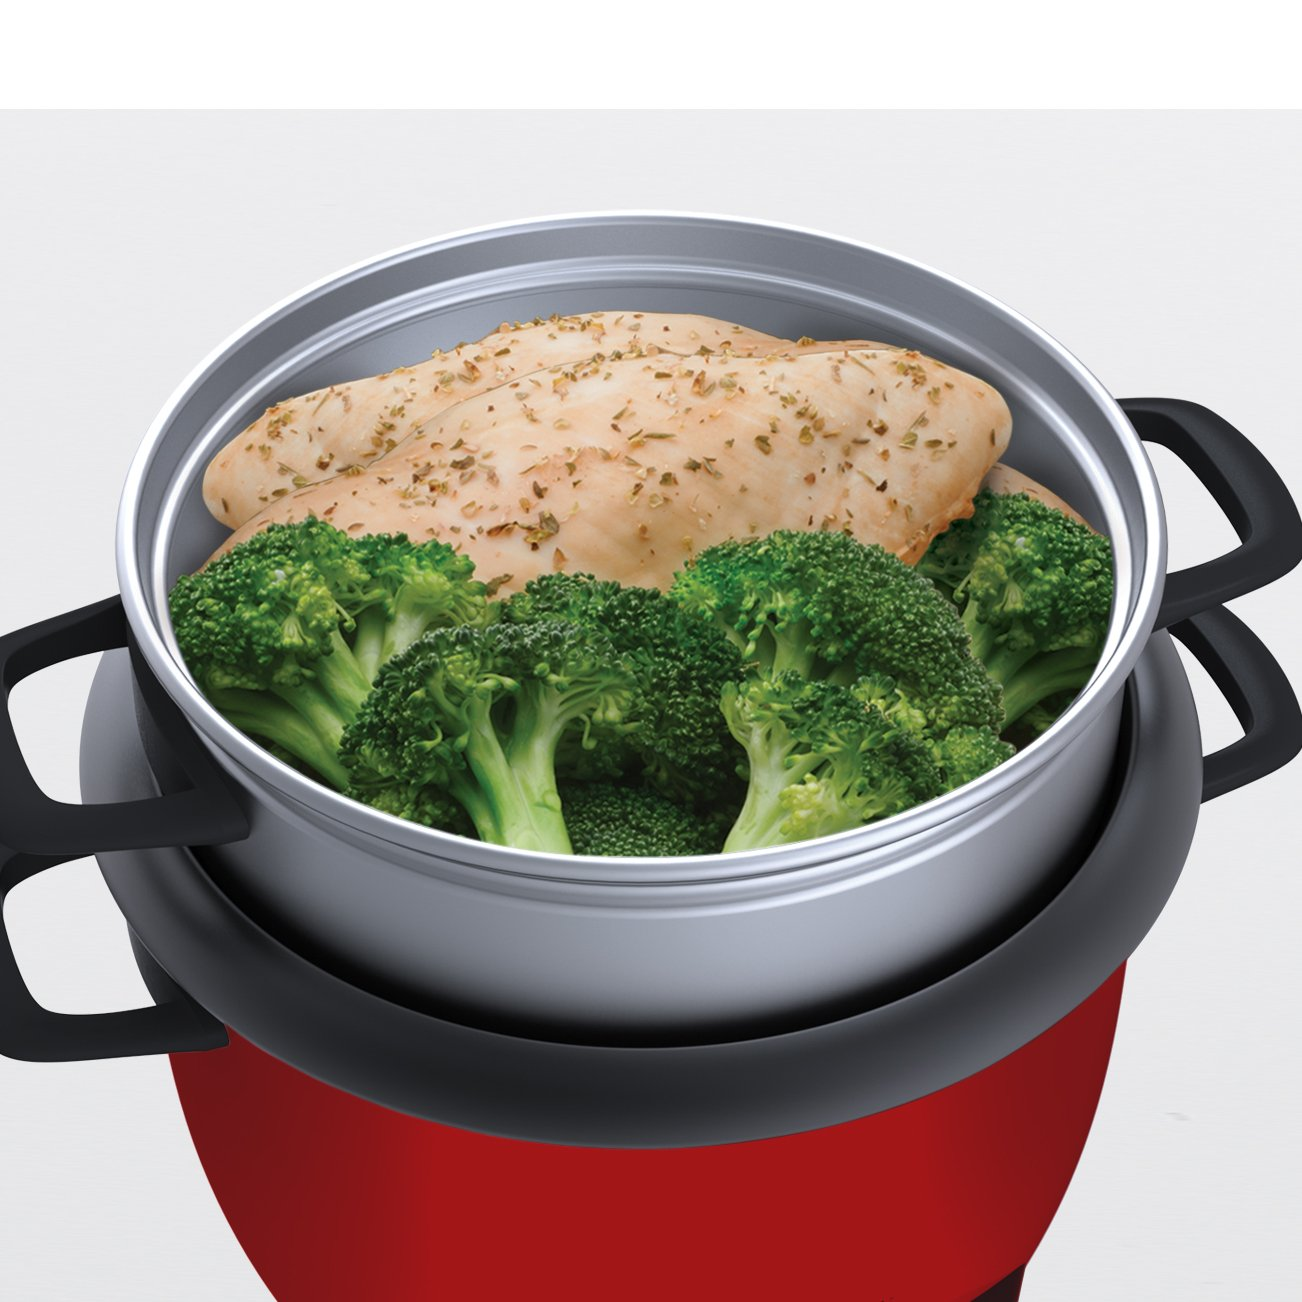 Aroma Housewares 6-Cup (Cooked) (3-Cup UNCOOKED) Pot Style Rice Cooker and Food Steamer by Aroma Housewares (Image #4)